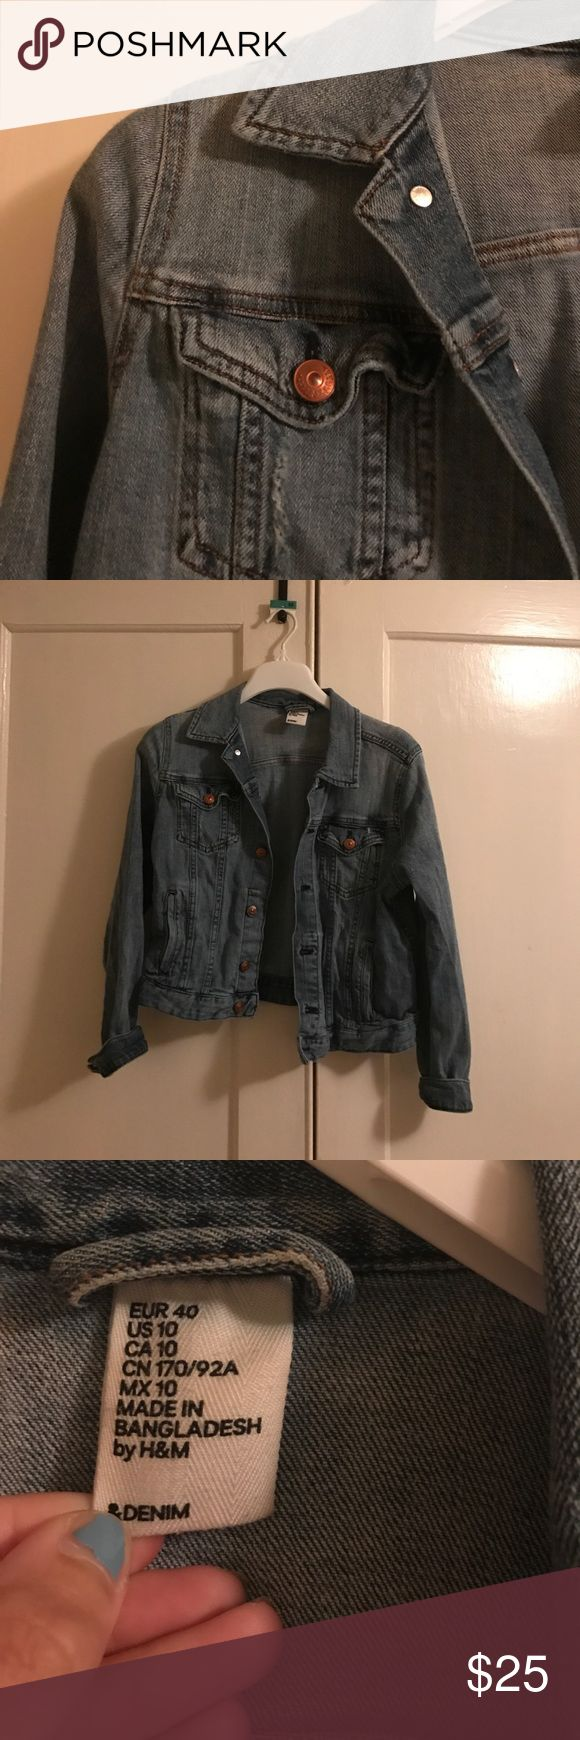 H&M denim jacket Super versatile denim jacket from H&M. The tag says size 10, but it's more like a 6 or an 8. It is pretty stretchy, as far as denim jackets go. I really like this jacket - I just never wear it! H&M Jackets & Coats Jean Jackets